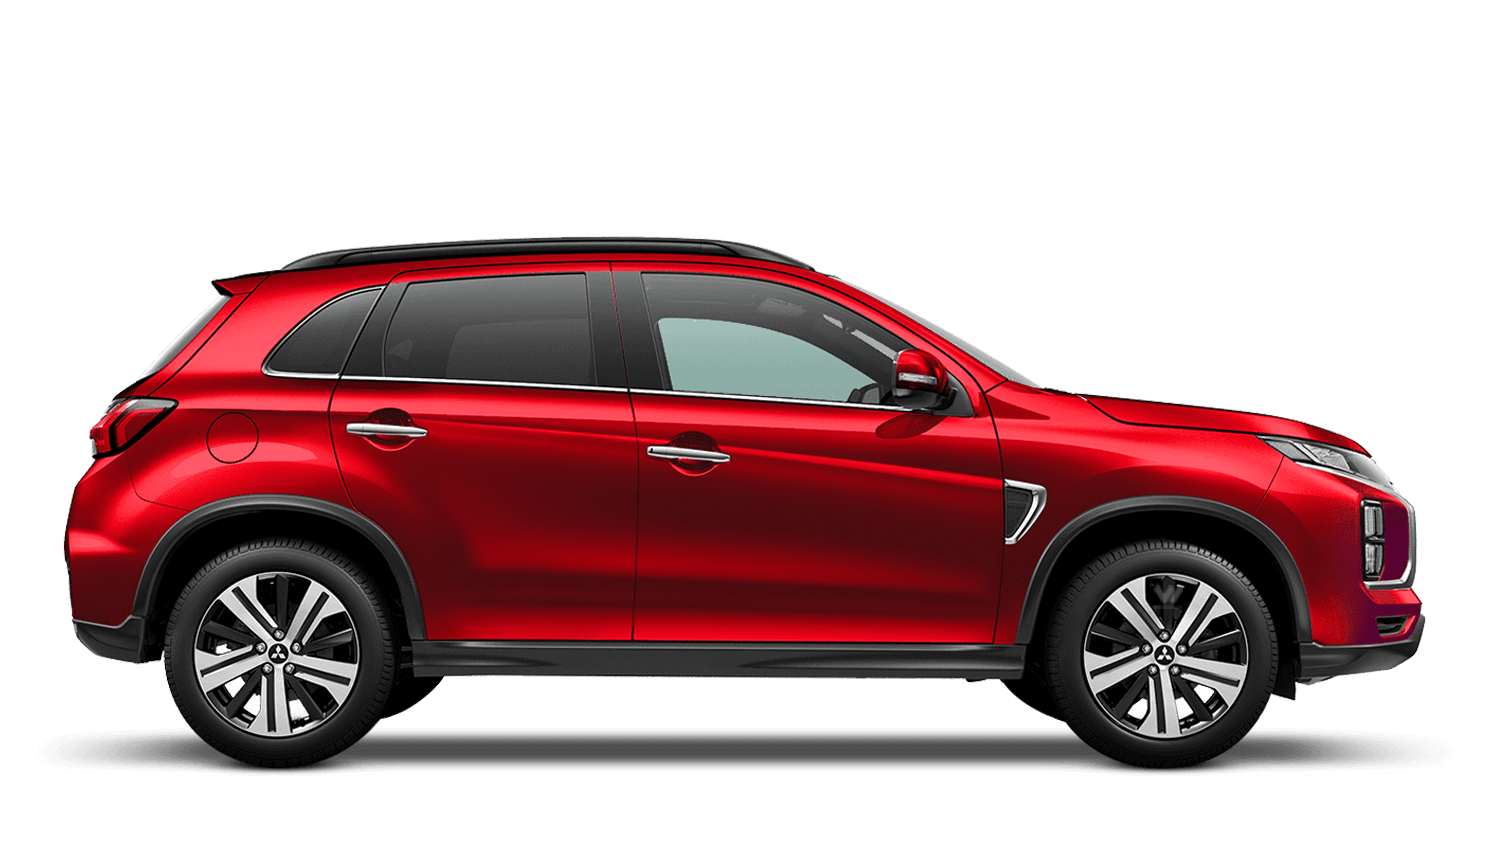 Red Diamond Mitsubishi Asx New